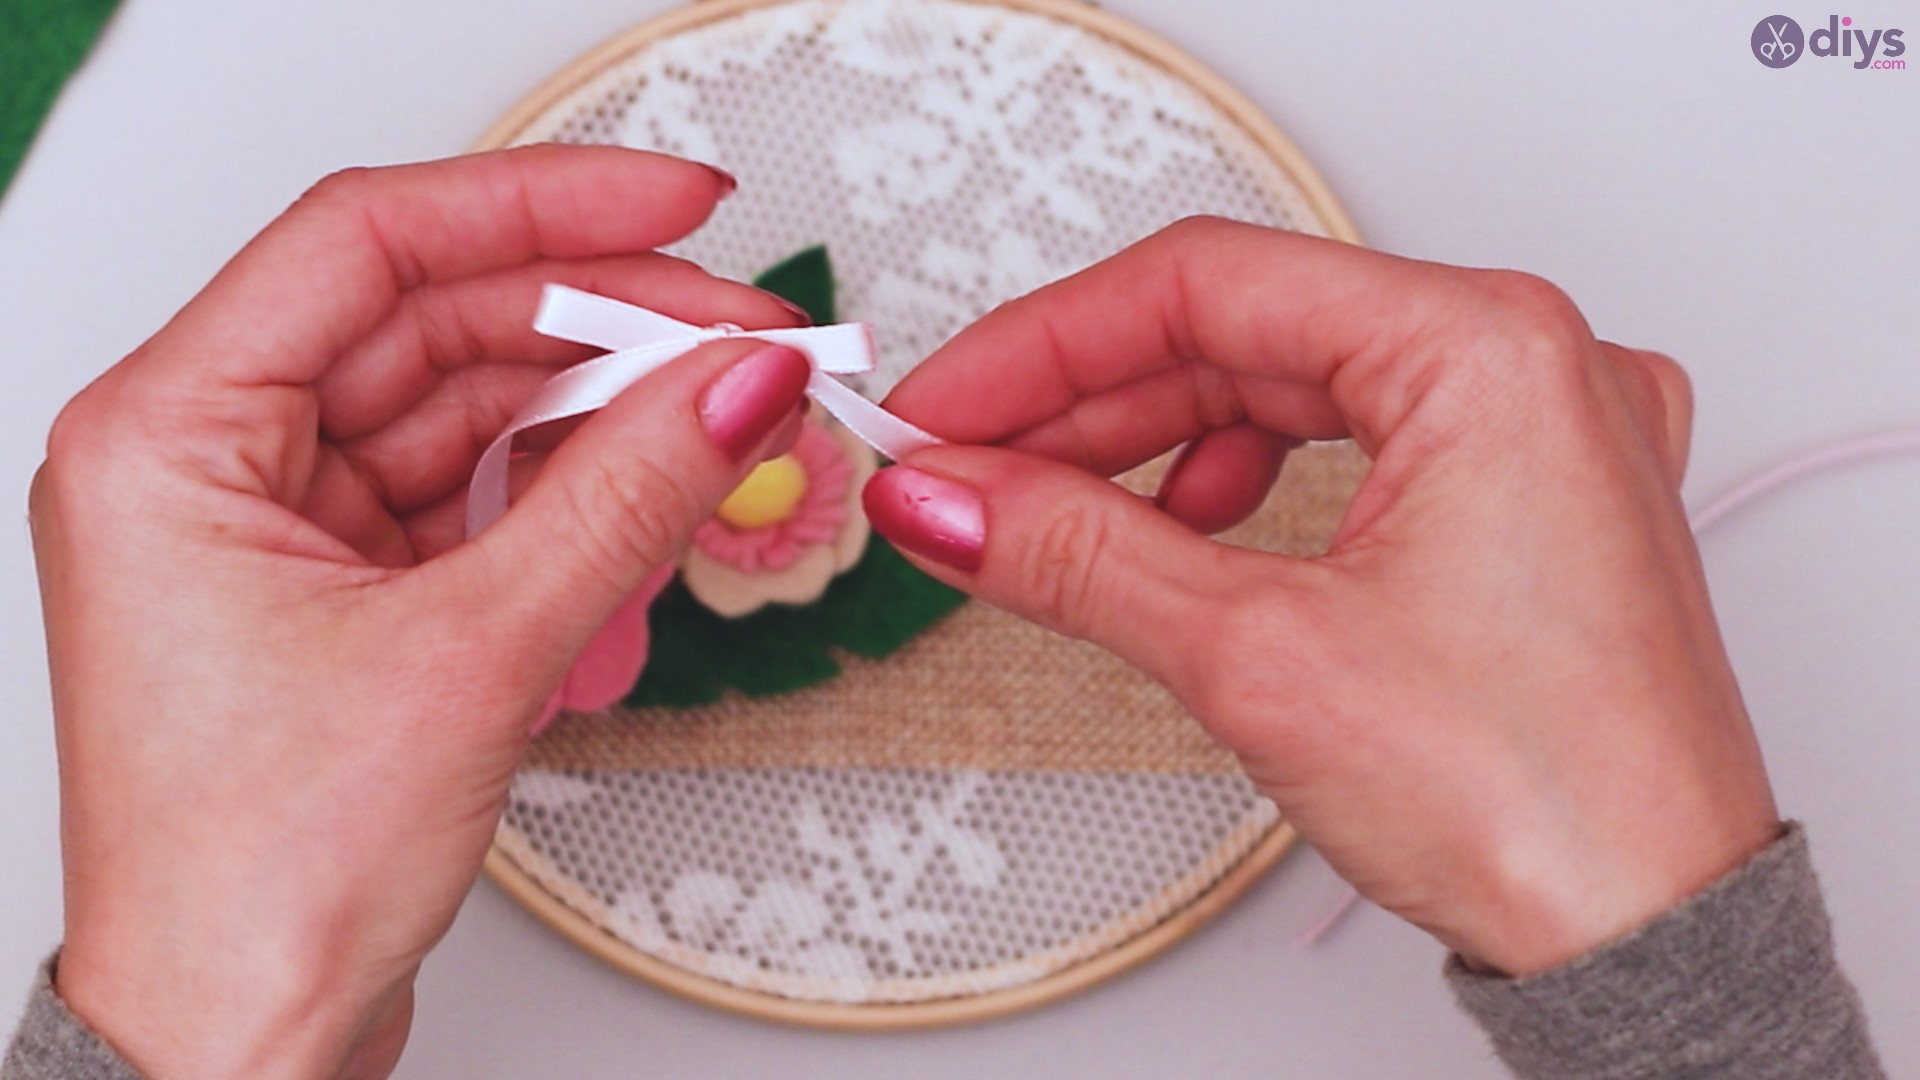 Diy embroidery hoop wall decor tutorial step by step (68)